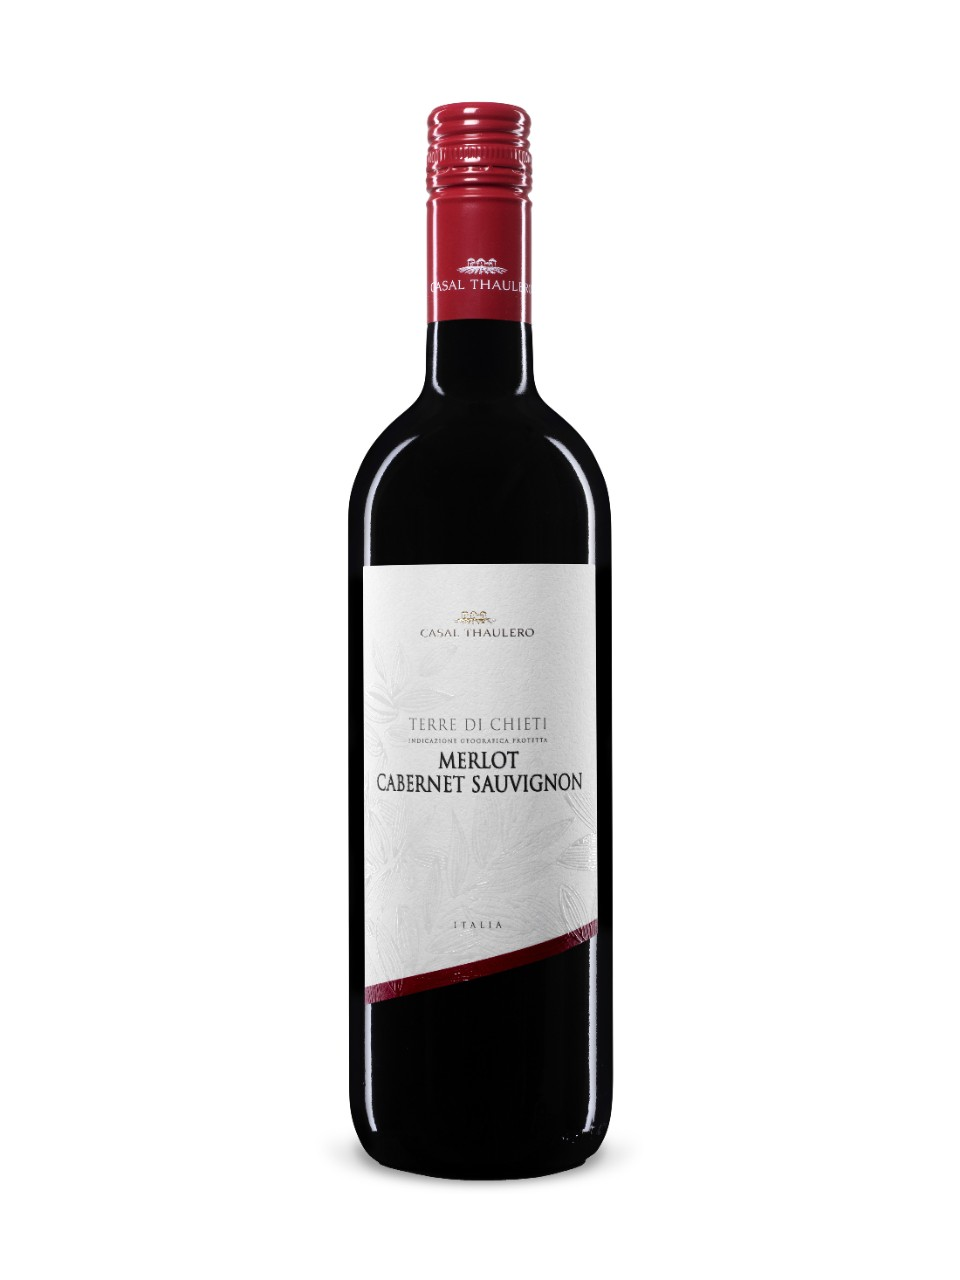 Casal Thaulero Merlot Cabernet Terre Di Chieti IGT from LCBO